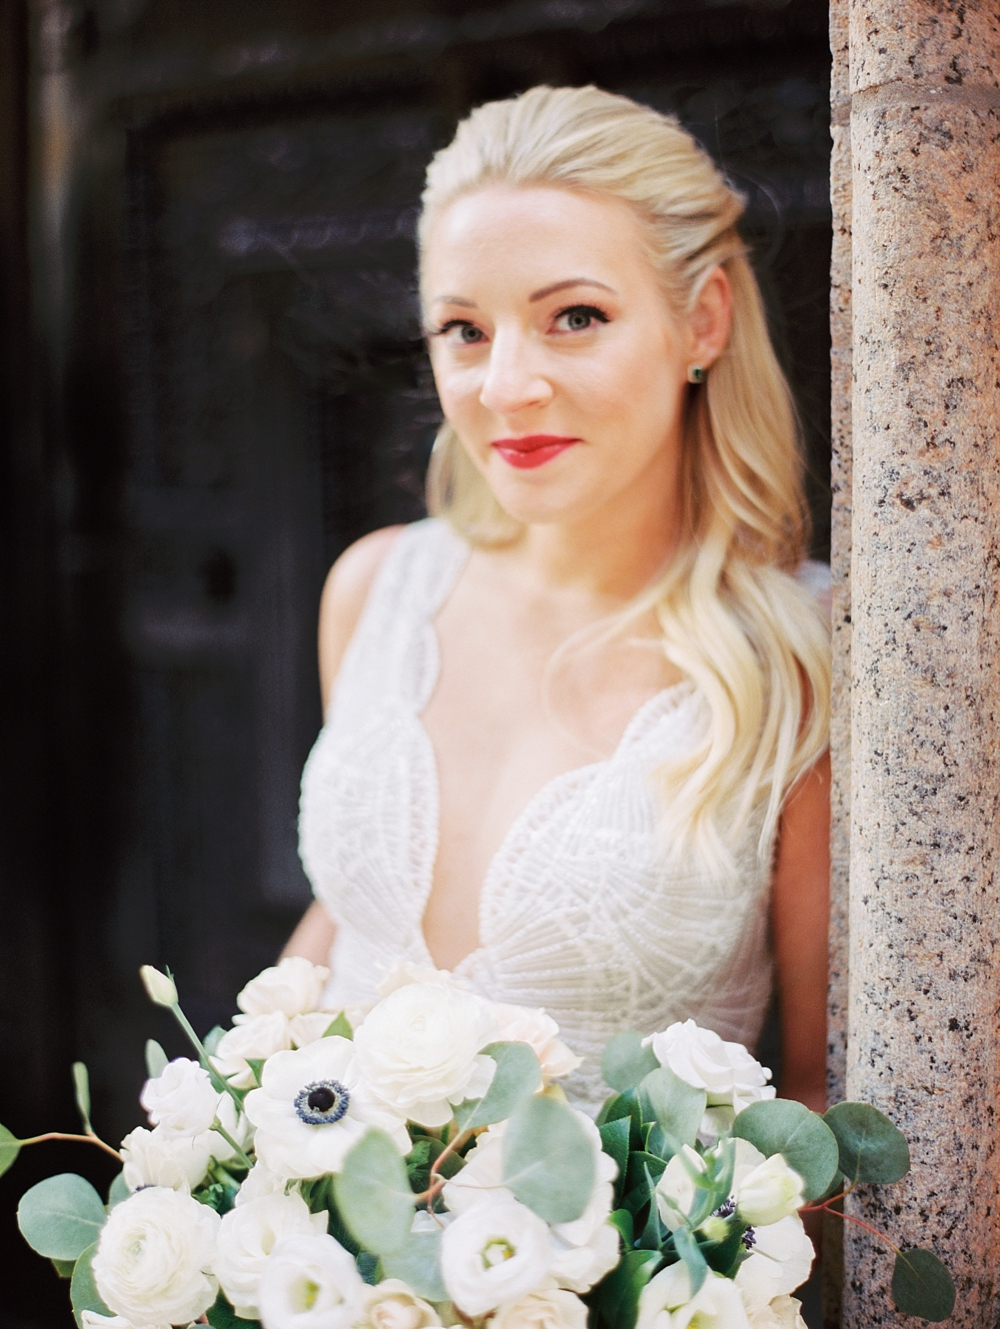 kristin-la-voie-photography-chicago-Wedding-Photographer-kimpton-gray-hotel-4